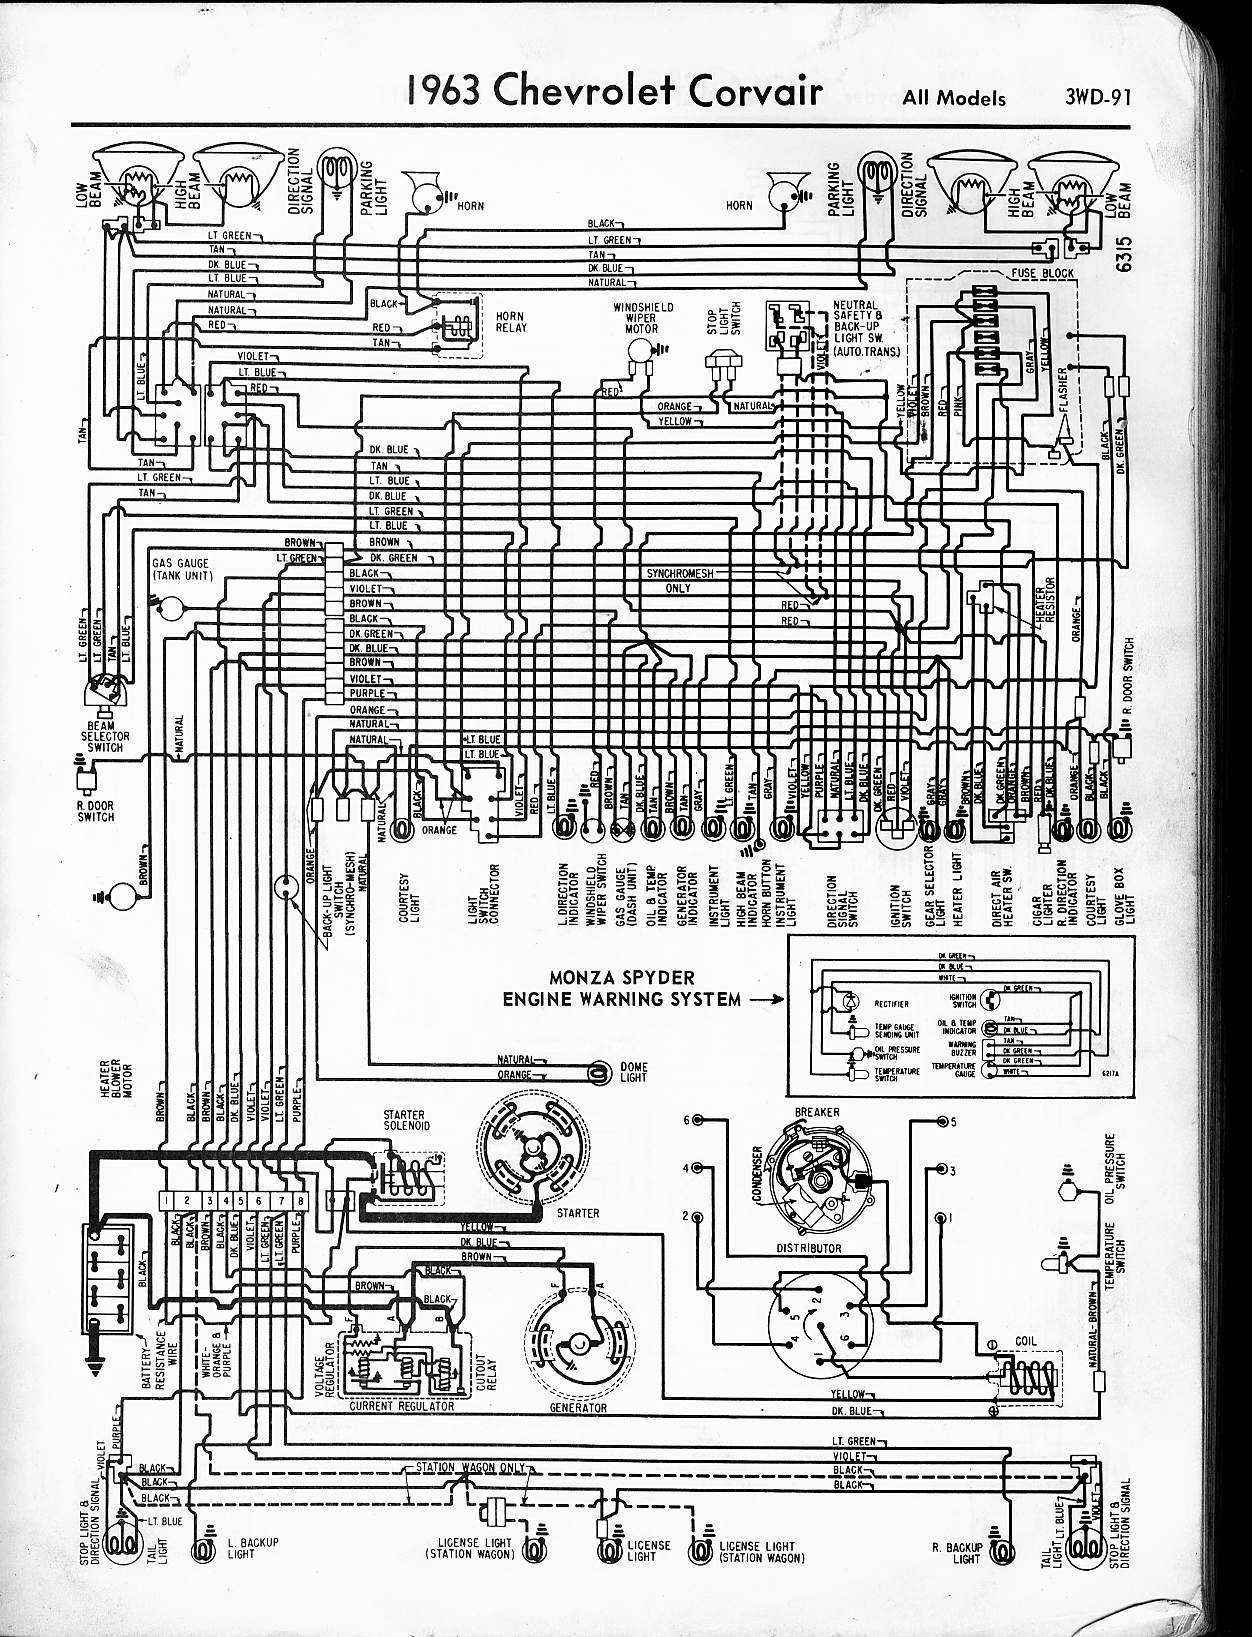 1965 chevy nova wiring diagram enthusiast wiring diagrams u2022 rh bwpartnersautos com